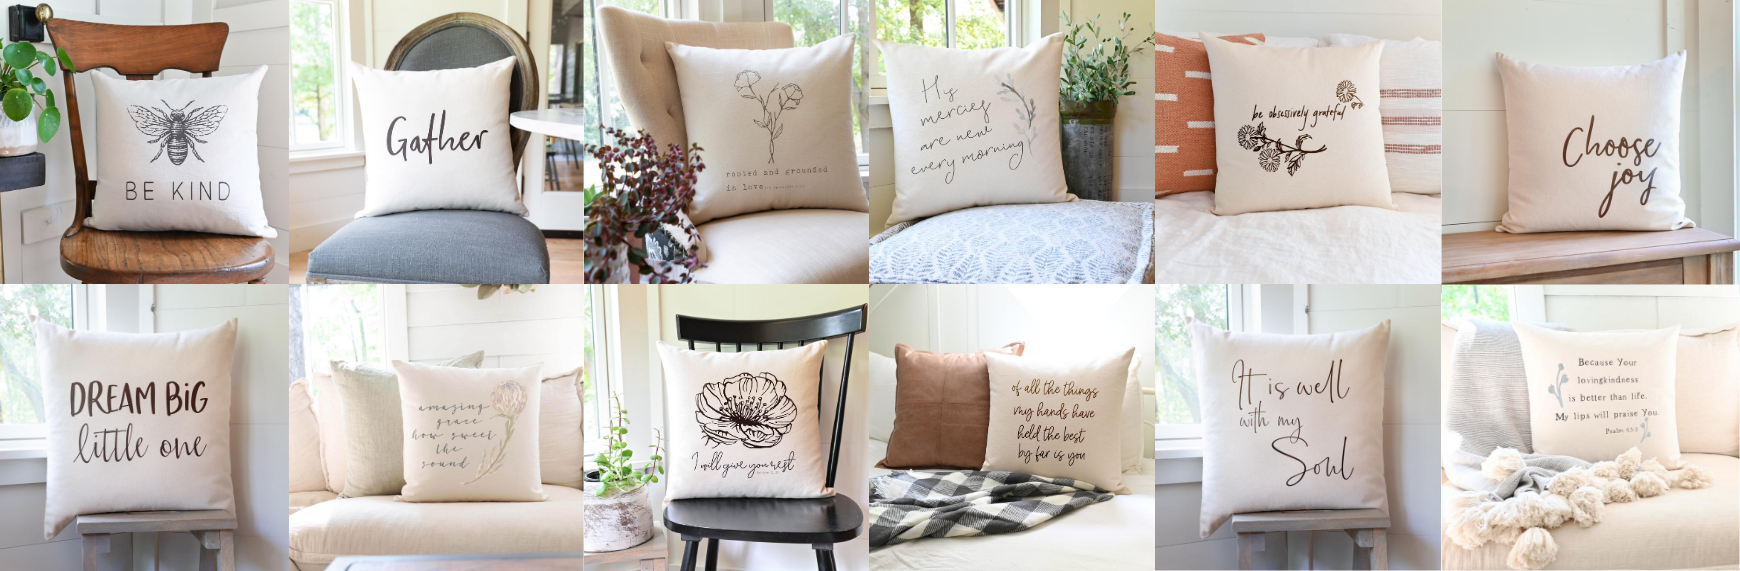 Rooted + Grounded Pillow Collection